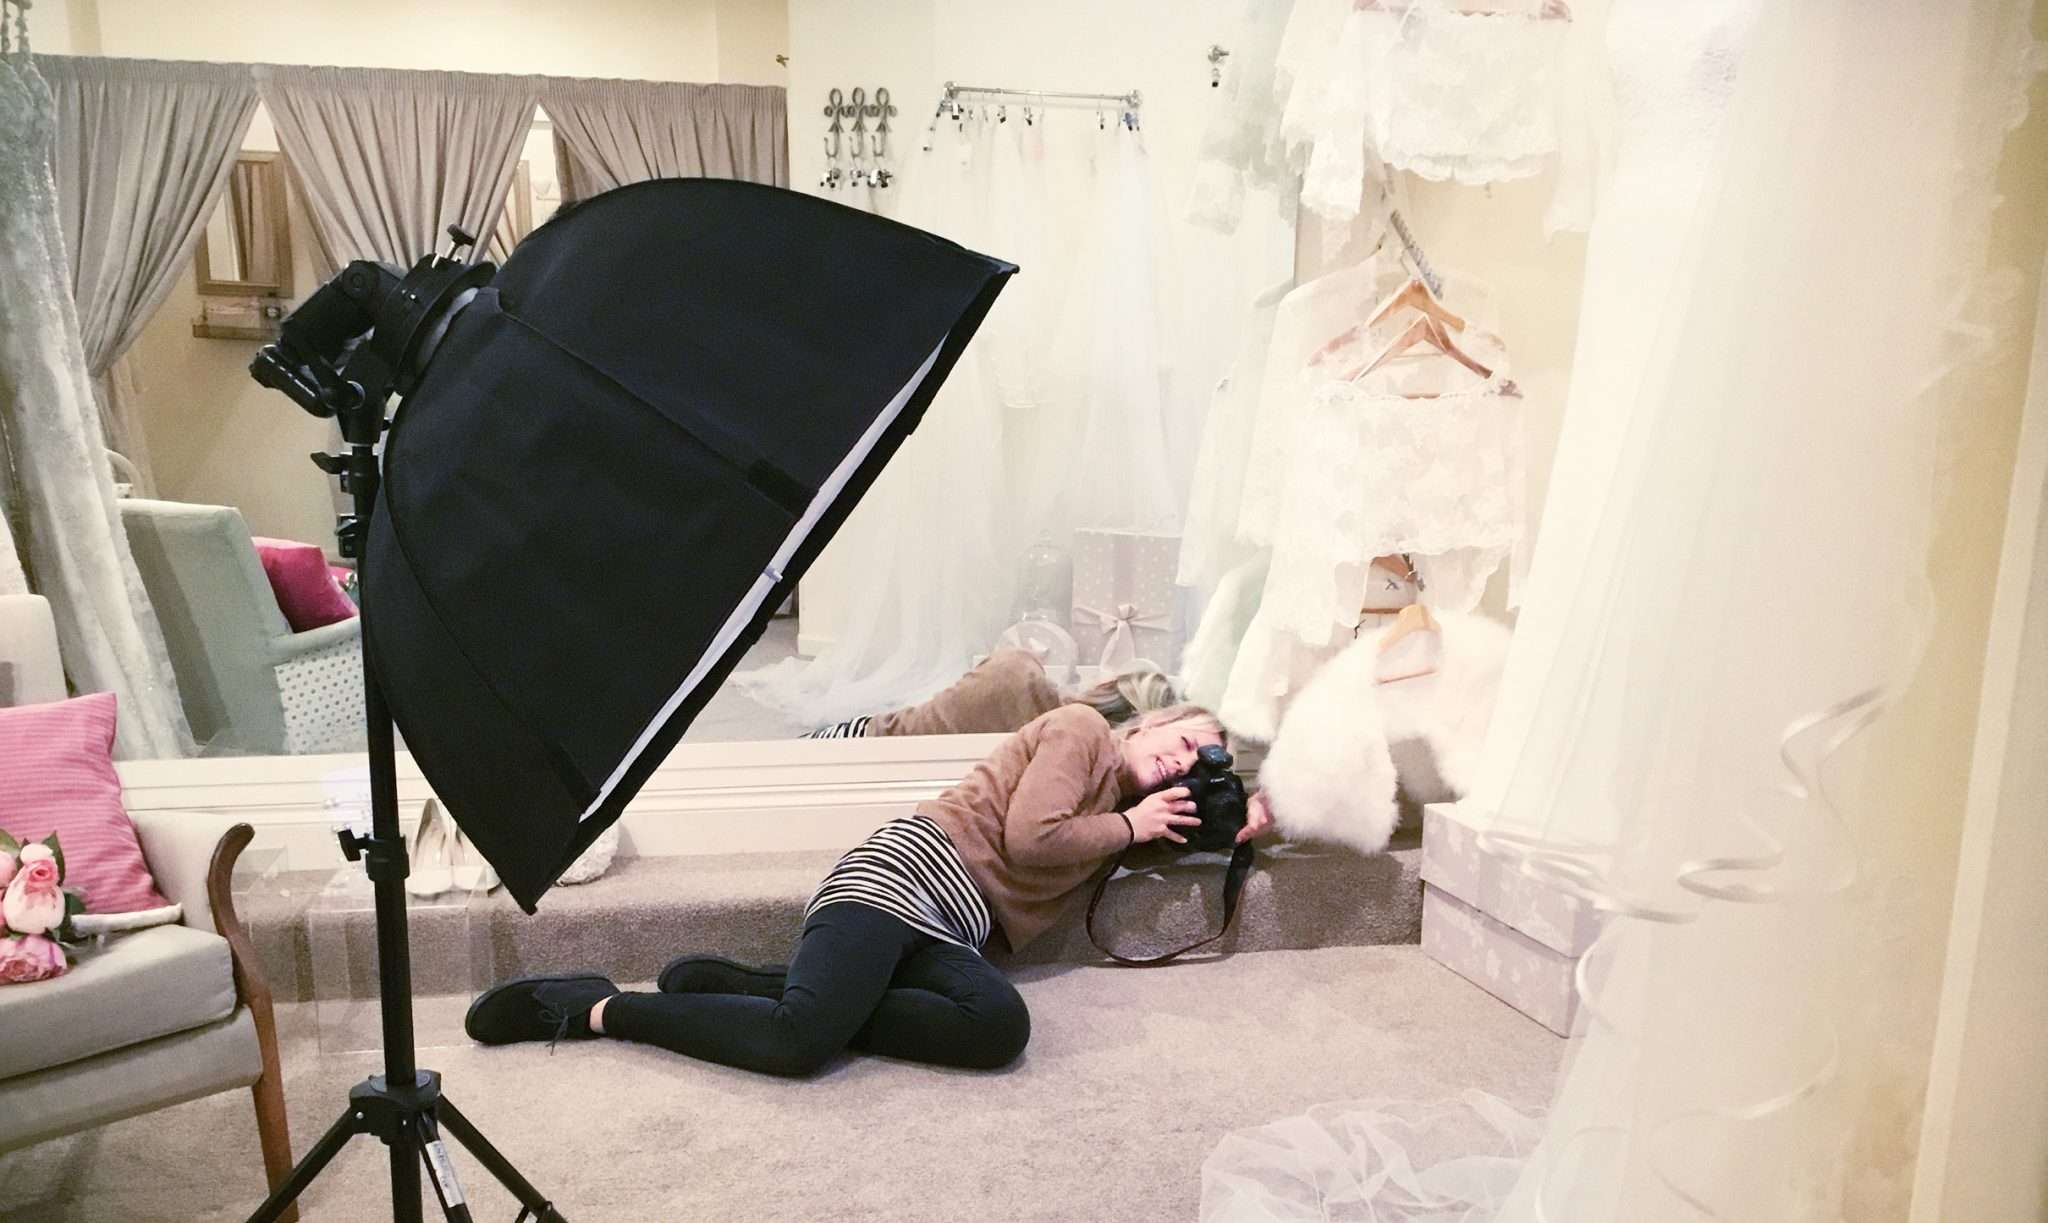 A photo of a female photographer taking a photo in a bridal boutique